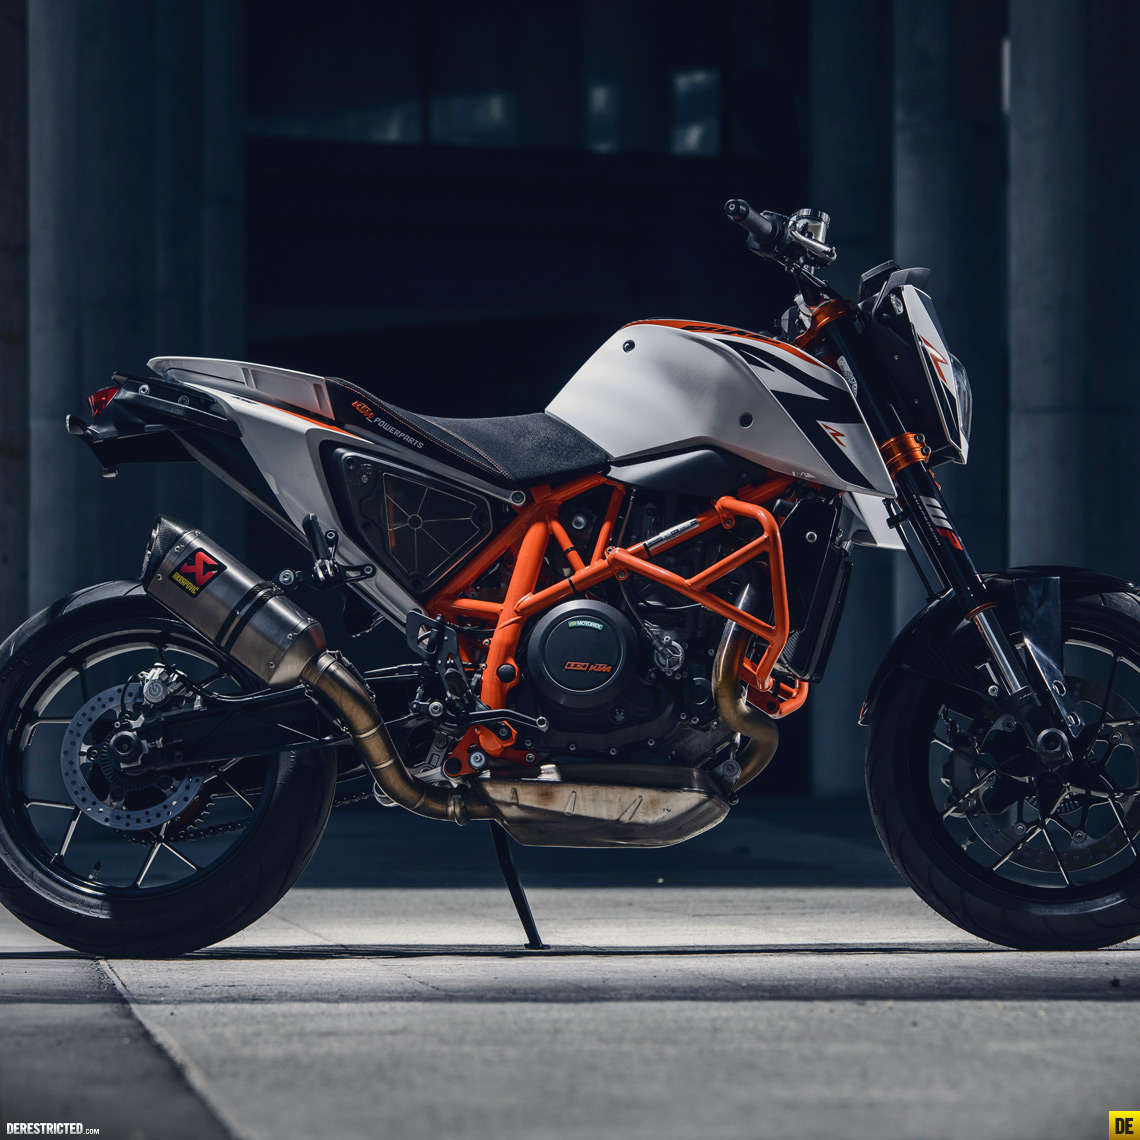 2014 ktm 690 duke r photoshoot derestricted. Black Bedroom Furniture Sets. Home Design Ideas